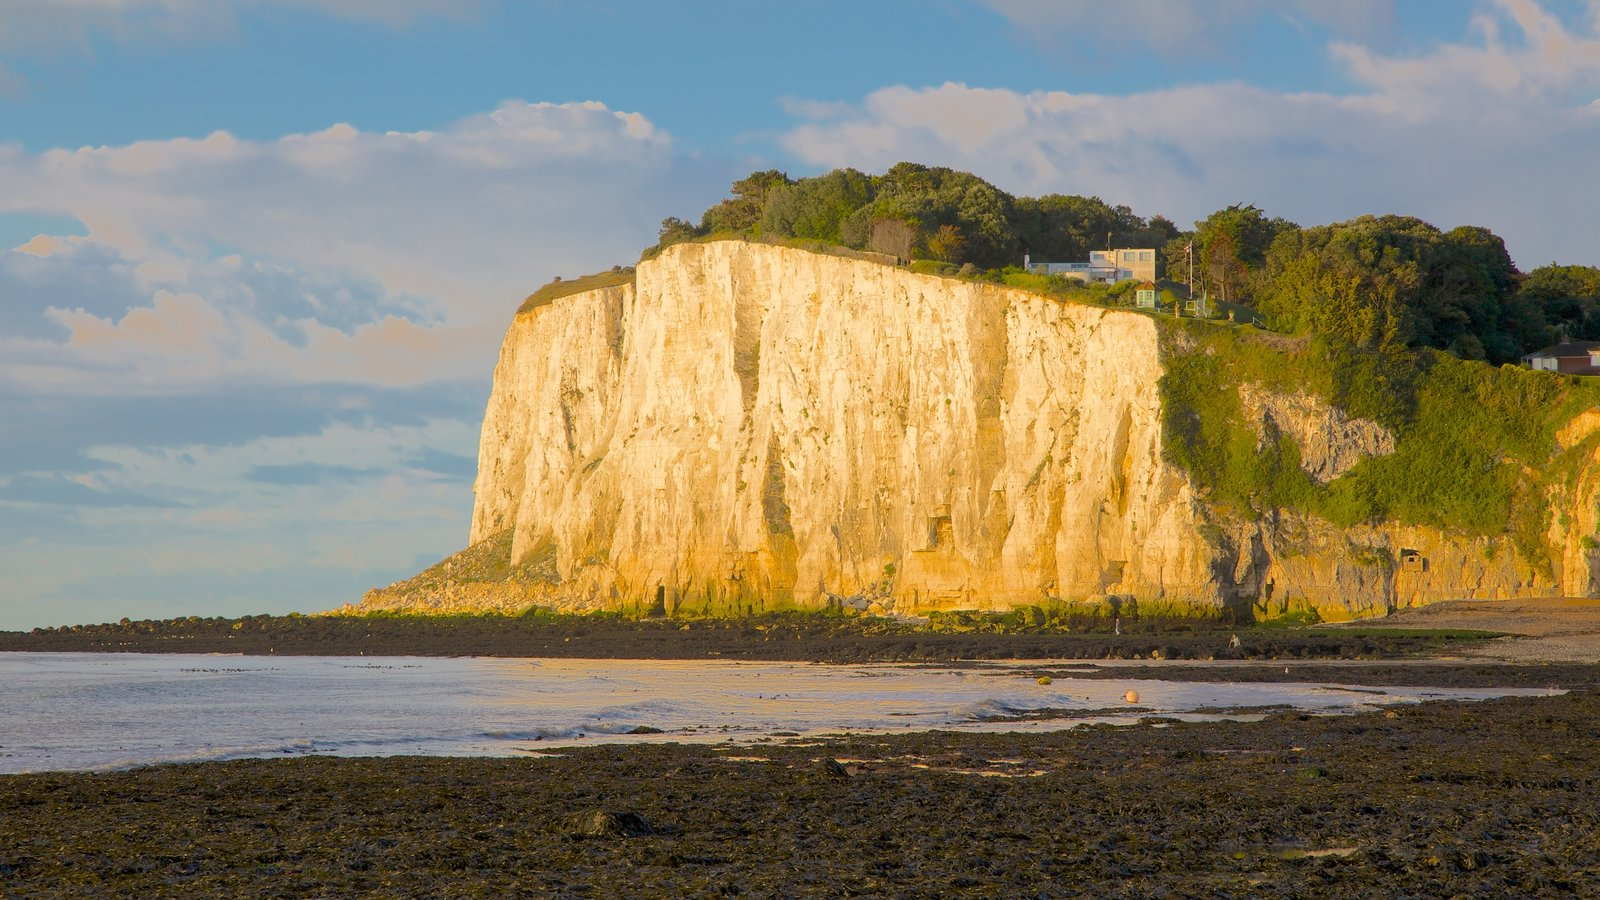 White Cliffs of Dover showing a pebble beach, mountains and landscape views